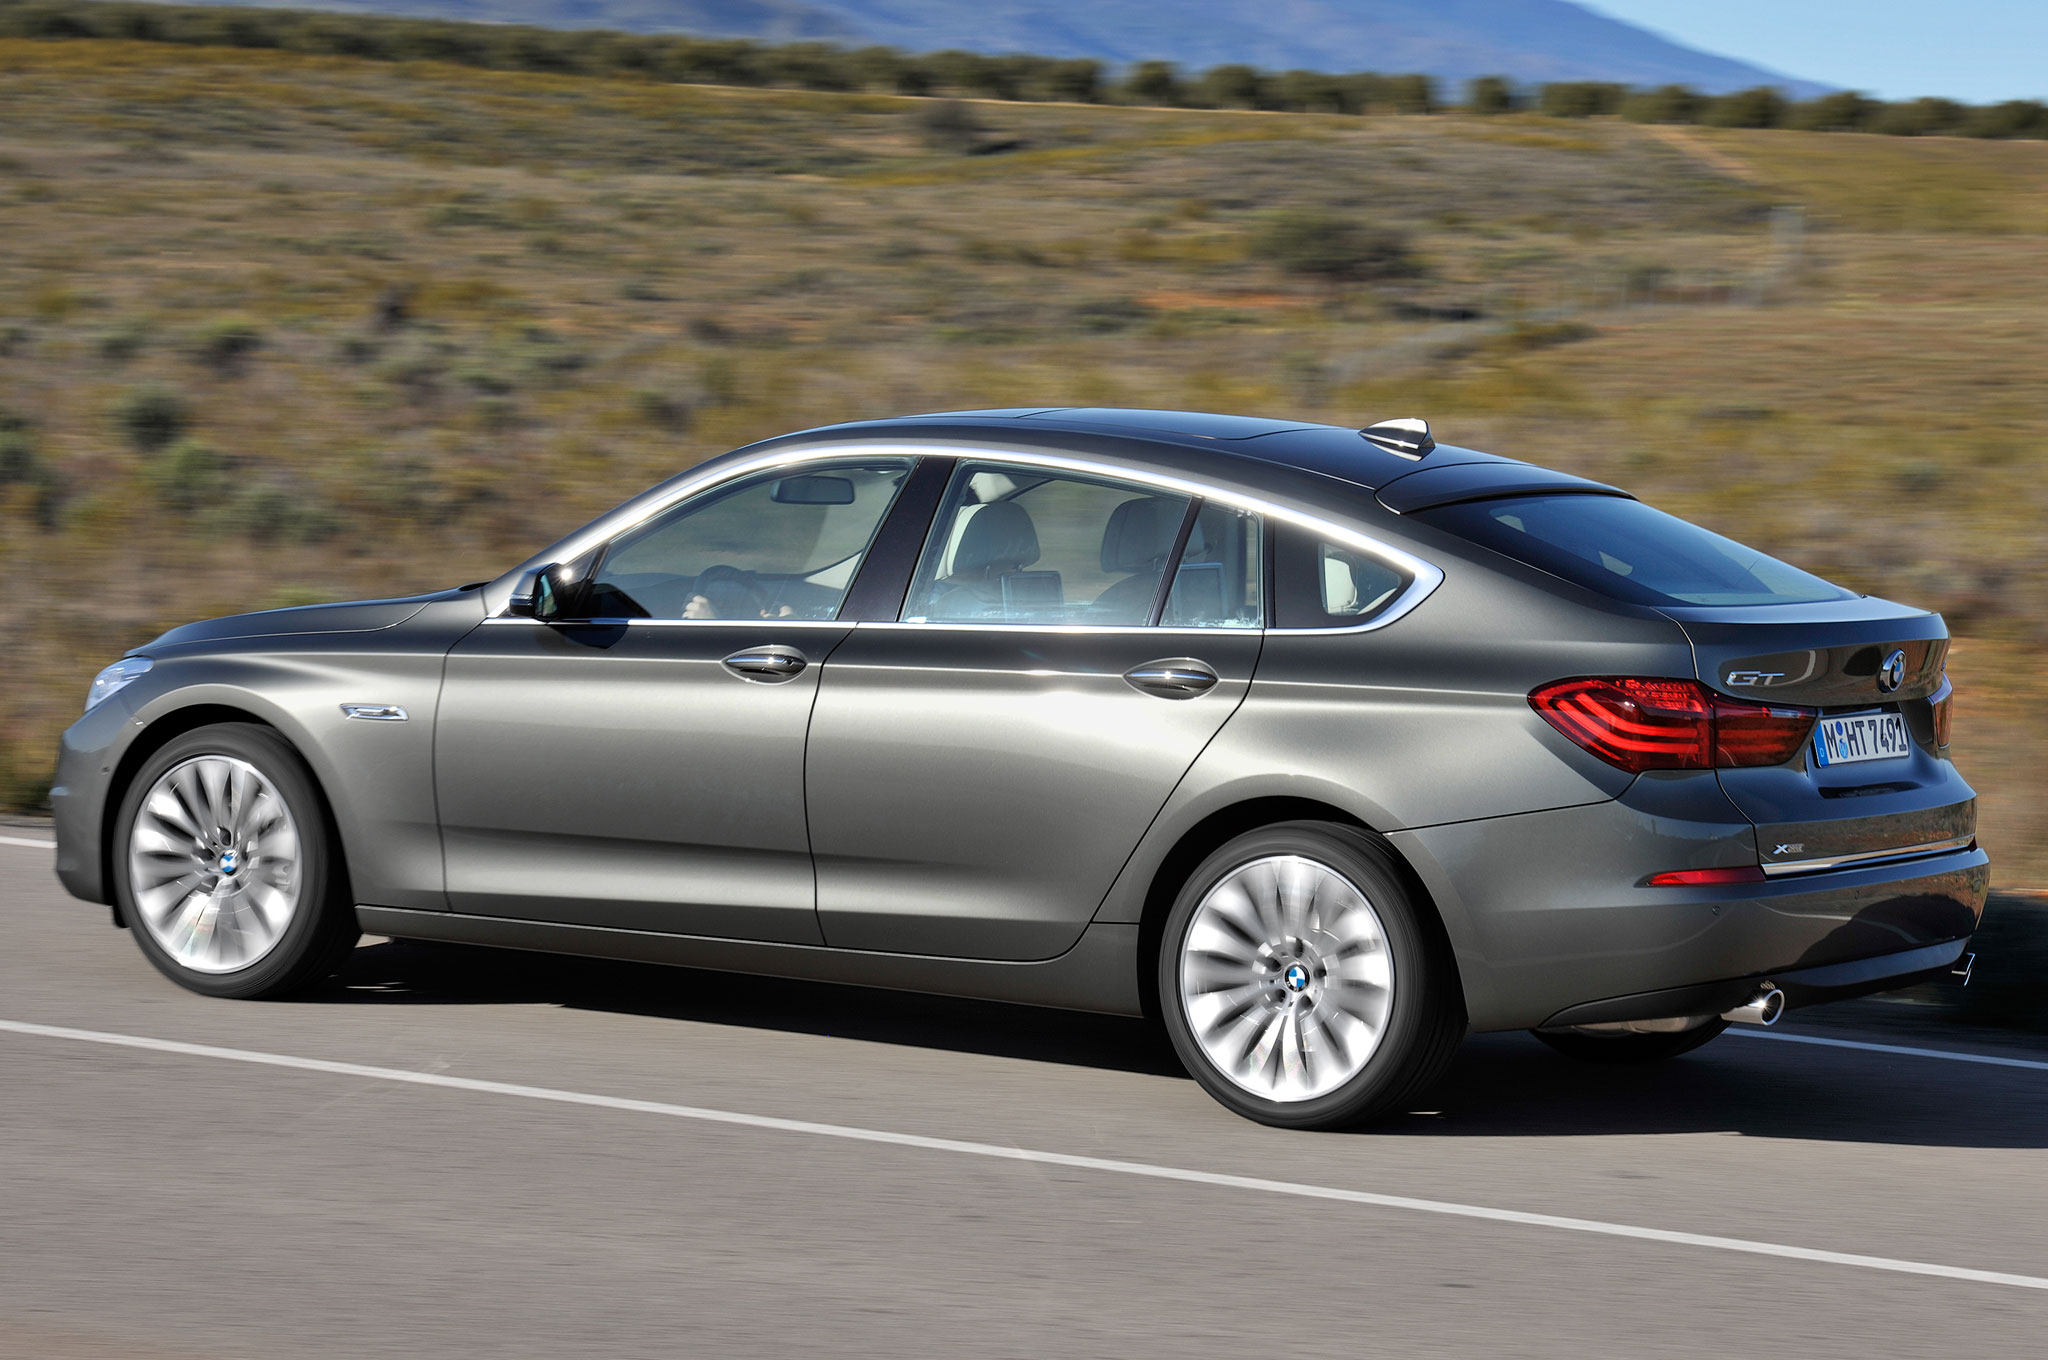 2015 Bmw 5 Series Gran Turismo Information And Photos Zombiedrive